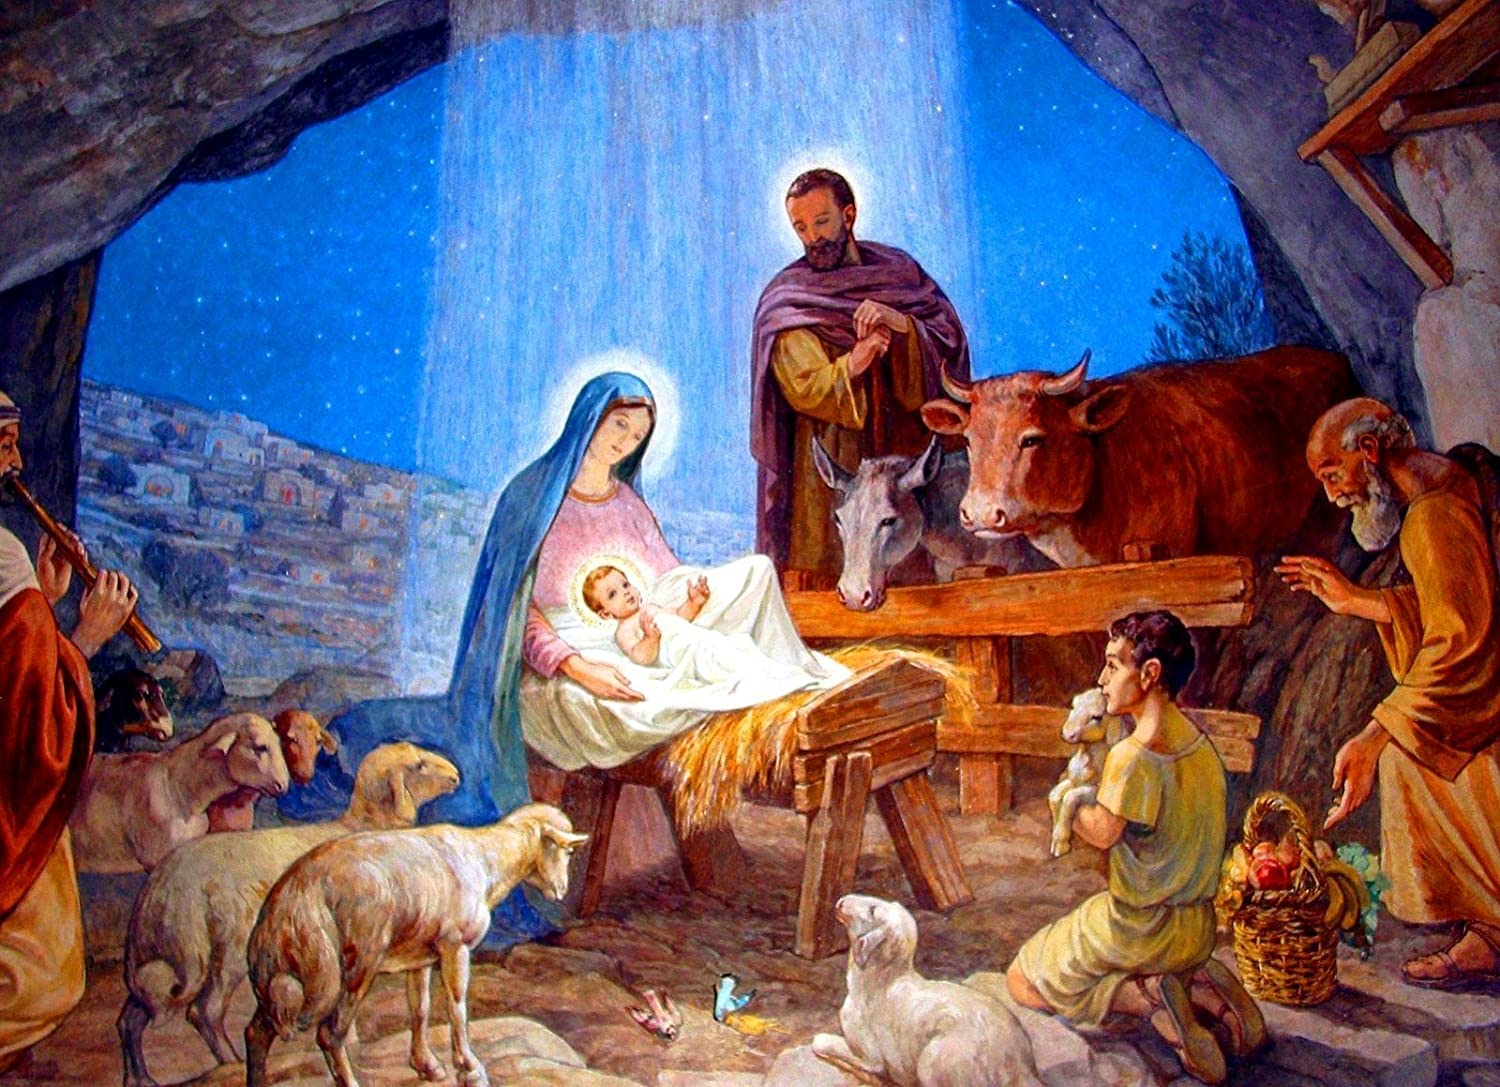 Amazon.com: Nativity Scene Christmas POSTER Painting Artwork print A3 Holy  Family Mary and Baby Infant Jesus picture Christian Catholic Religious Wall  Art Decor for Home Room Chapel: Handmade